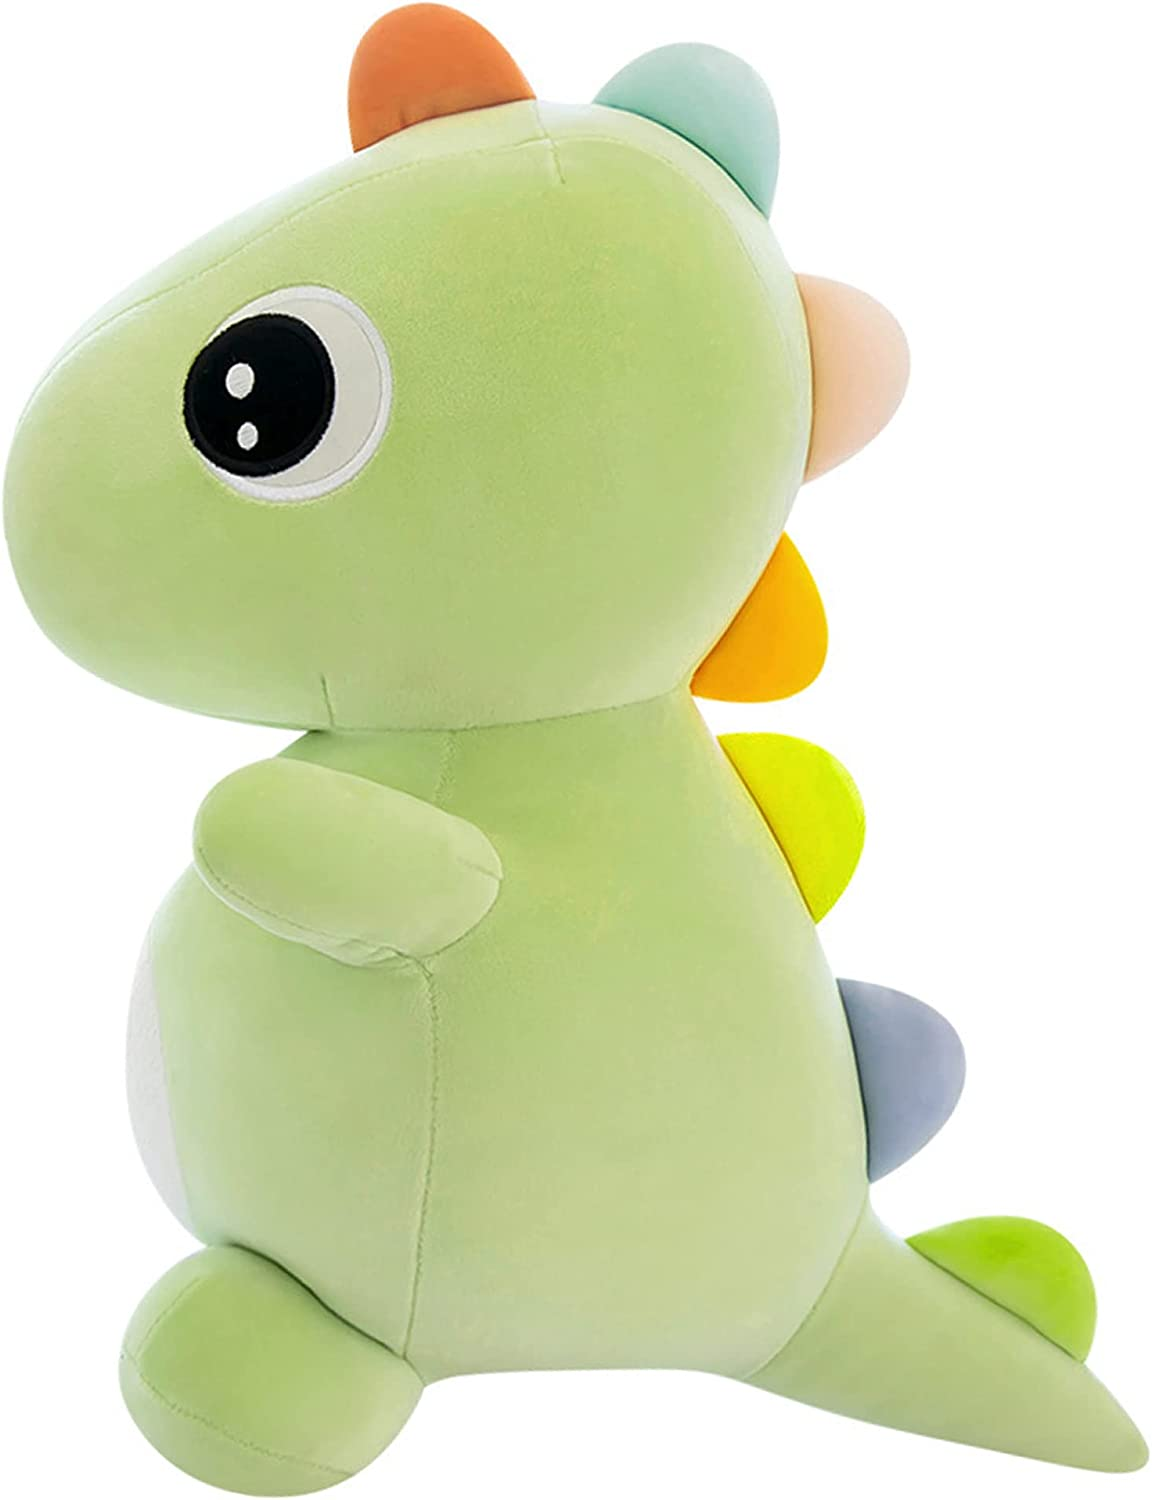 Locmetur Dinosaur Plush Toys for Kid 3-5 Green Dino Plushie for Toddlers Soft Stuffed Animals Plushies Doll Perfect Present for Babies Birthday Gifts for Kids Girls Boys Christmas Home Decoration